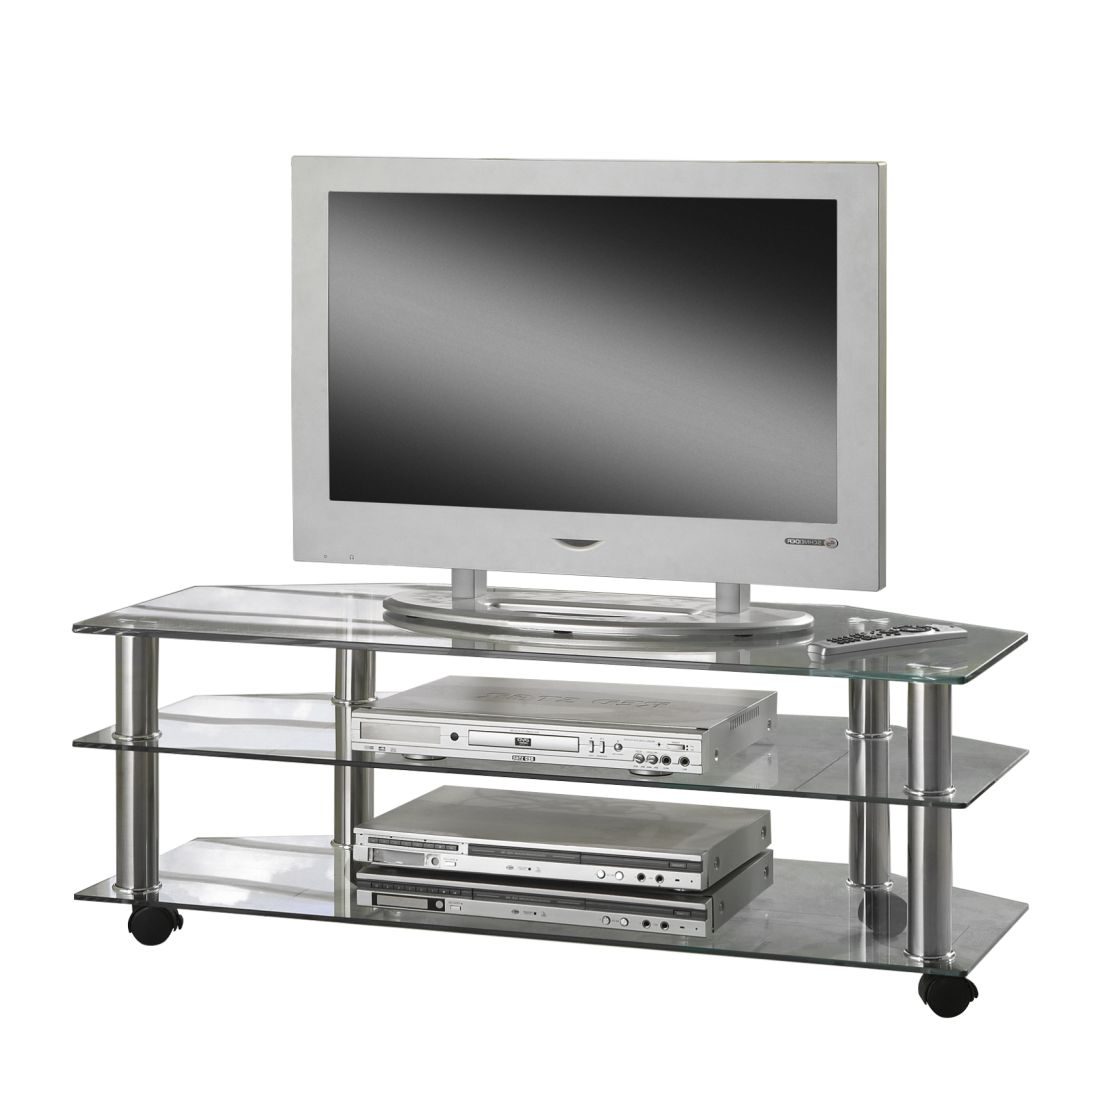 tv rack rollen perfect mehr ansichten cattelan italia. Black Bedroom Furniture Sets. Home Design Ideas